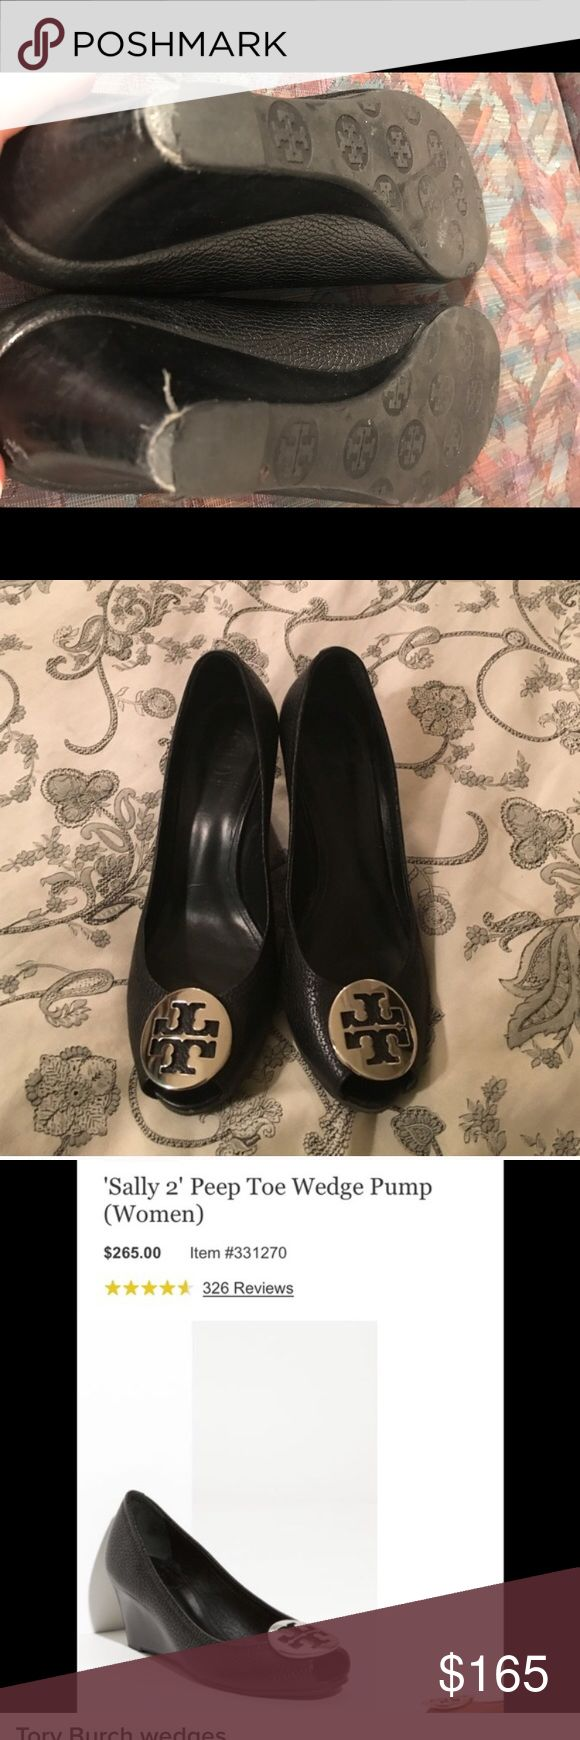 Tory Burch Sally Black Peep Toe Wedges Iconic and class authentic Tory burch wedges. These are an absolute staple in any business wardrobe. The add style and elegance to any professional or dressy outfit! So comfortable and super easy to walk in. Only selling because I need a different size. Wear on heel tip and toes as pictured, but not at all noticeable during wear- just pictured for full disclosure. Good condition! Make an offer! Tory Burch Shoes Wedges